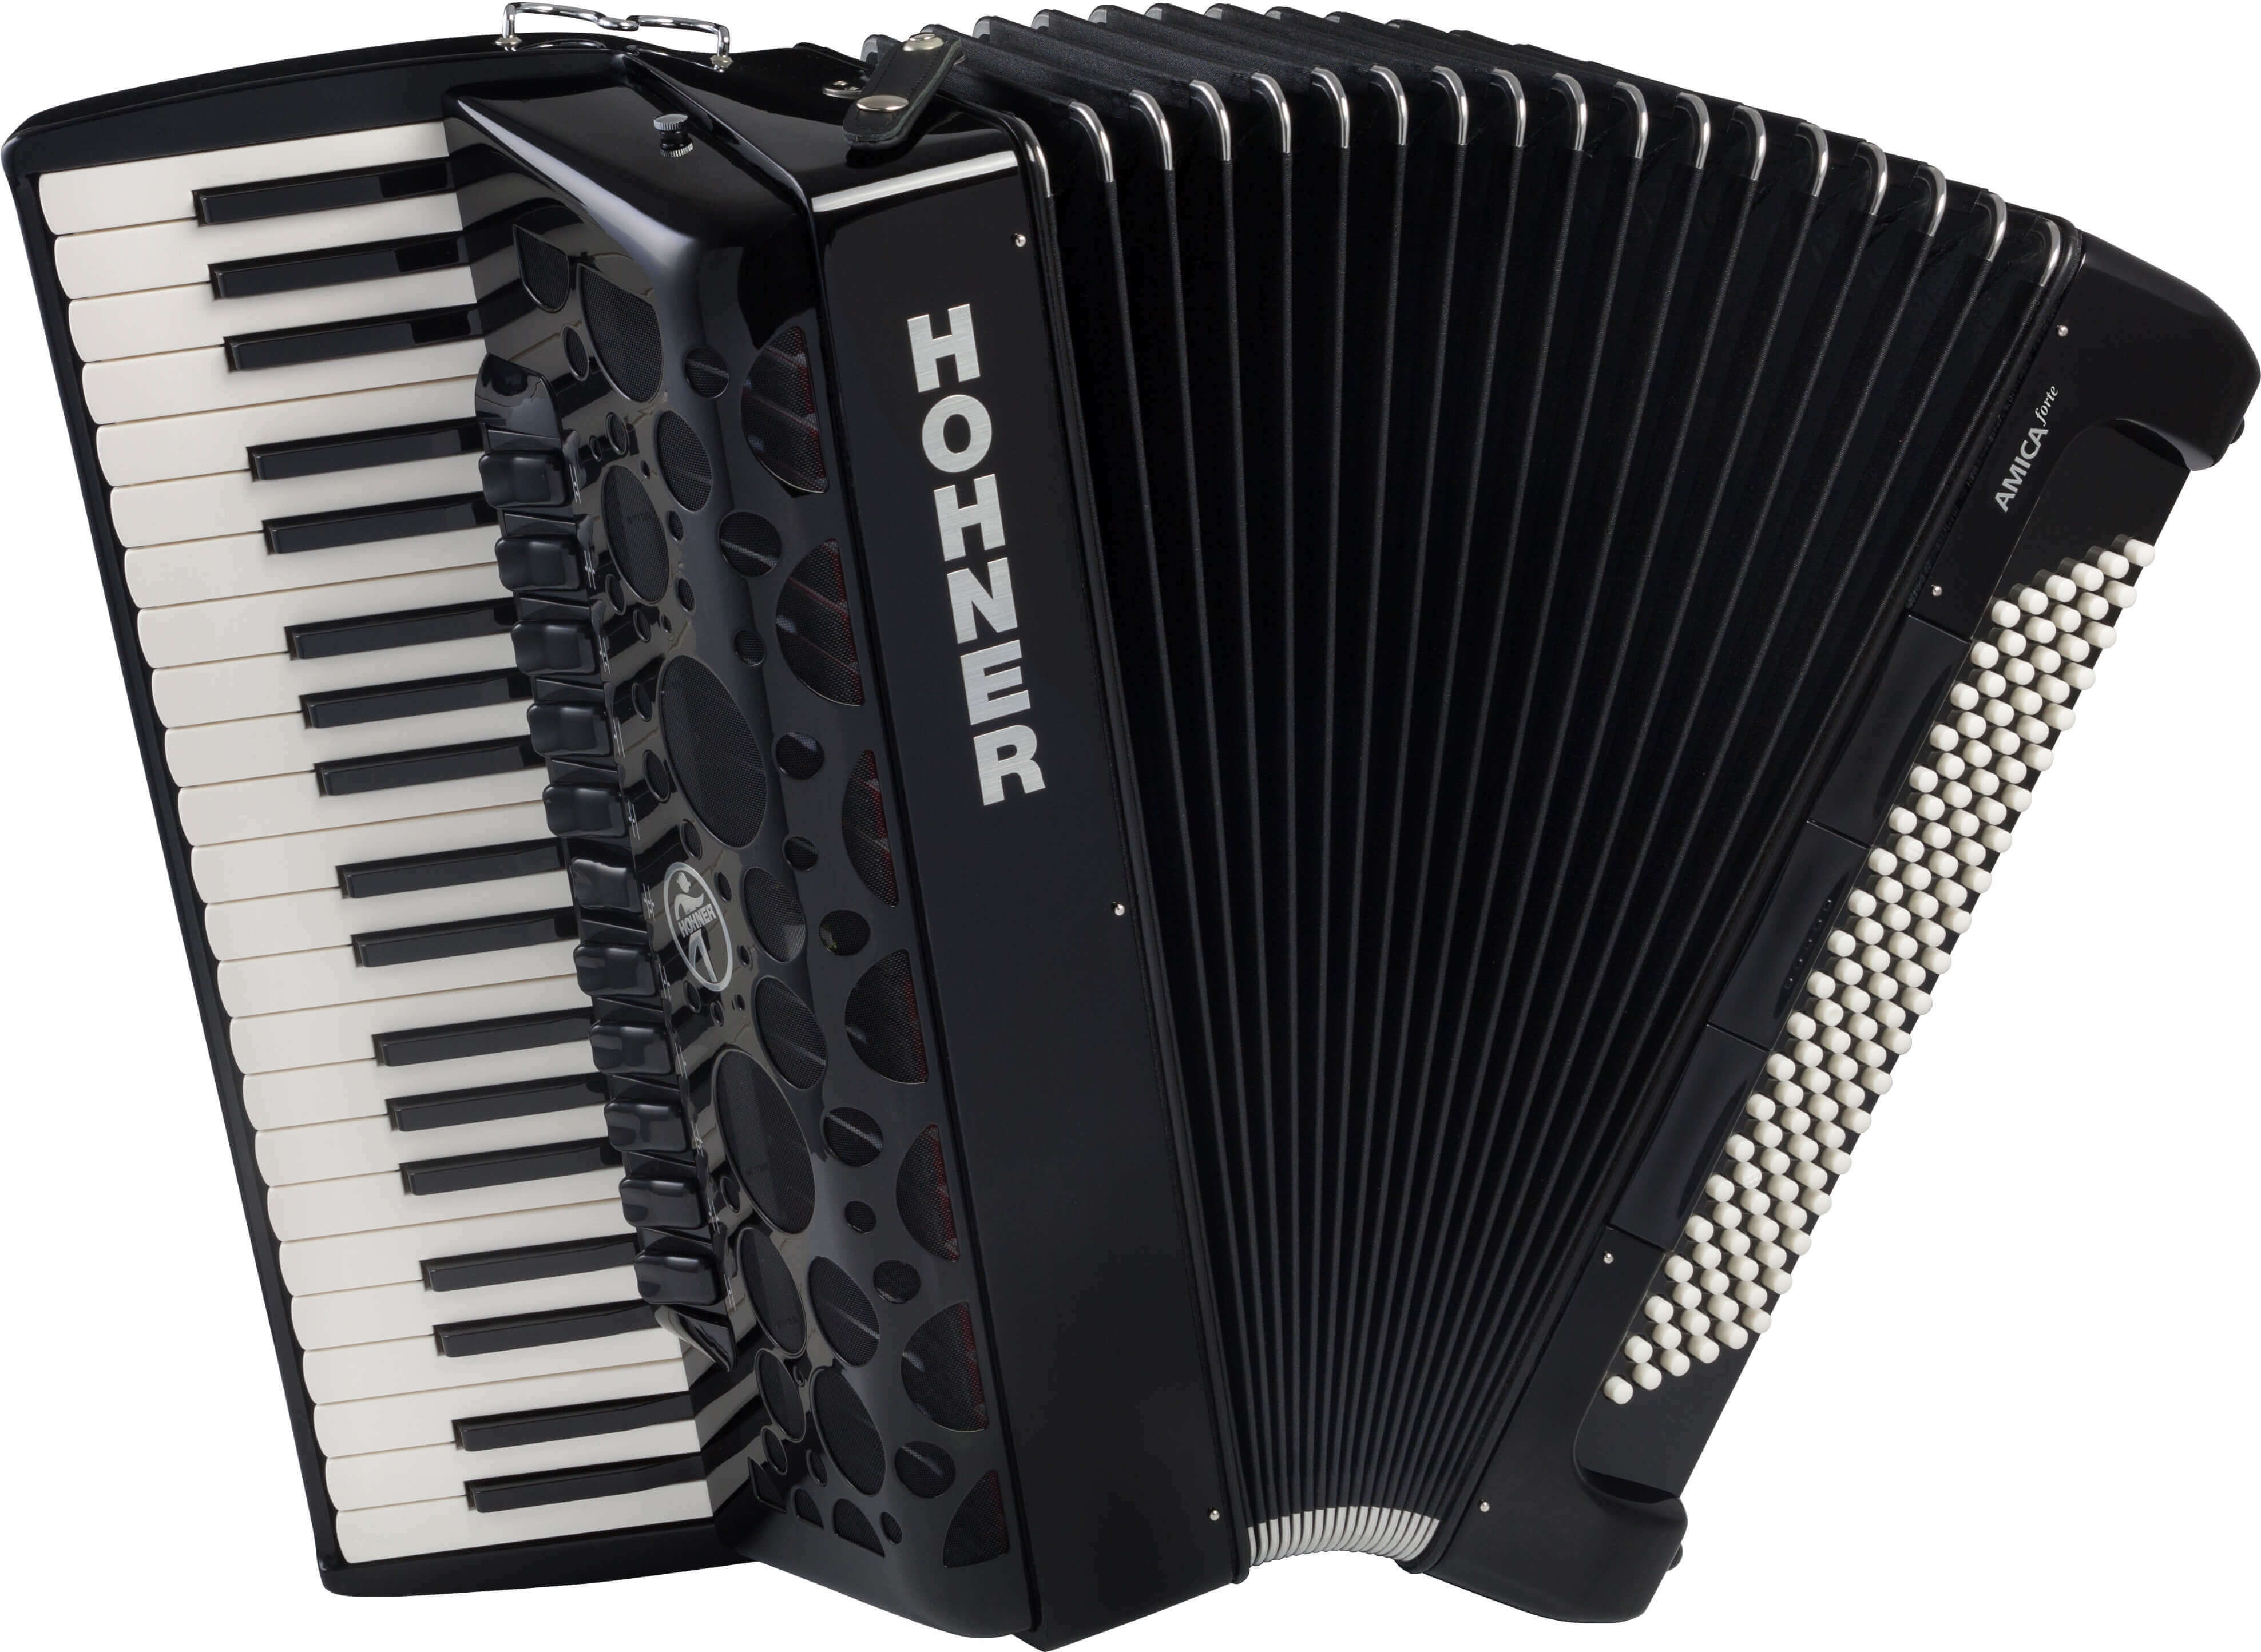 Hohner Amica IV piano accordion